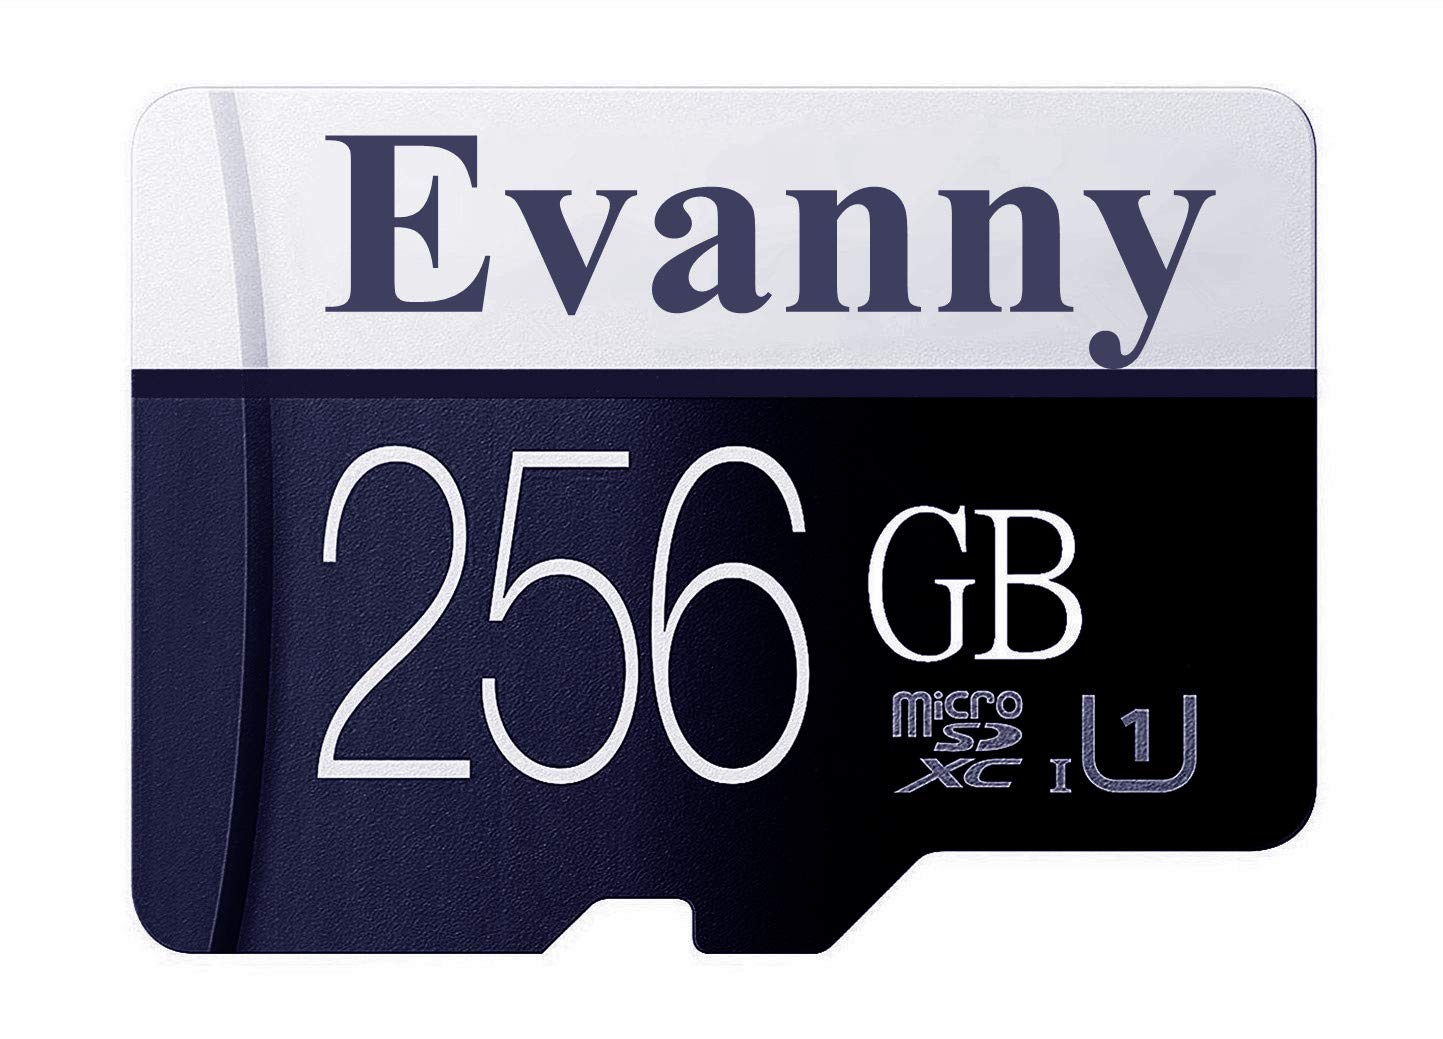 Evanny 256GB Micro SD SDXC Memory Card High Speed Class 10 with Micro SD Adapter(E67-EN1)